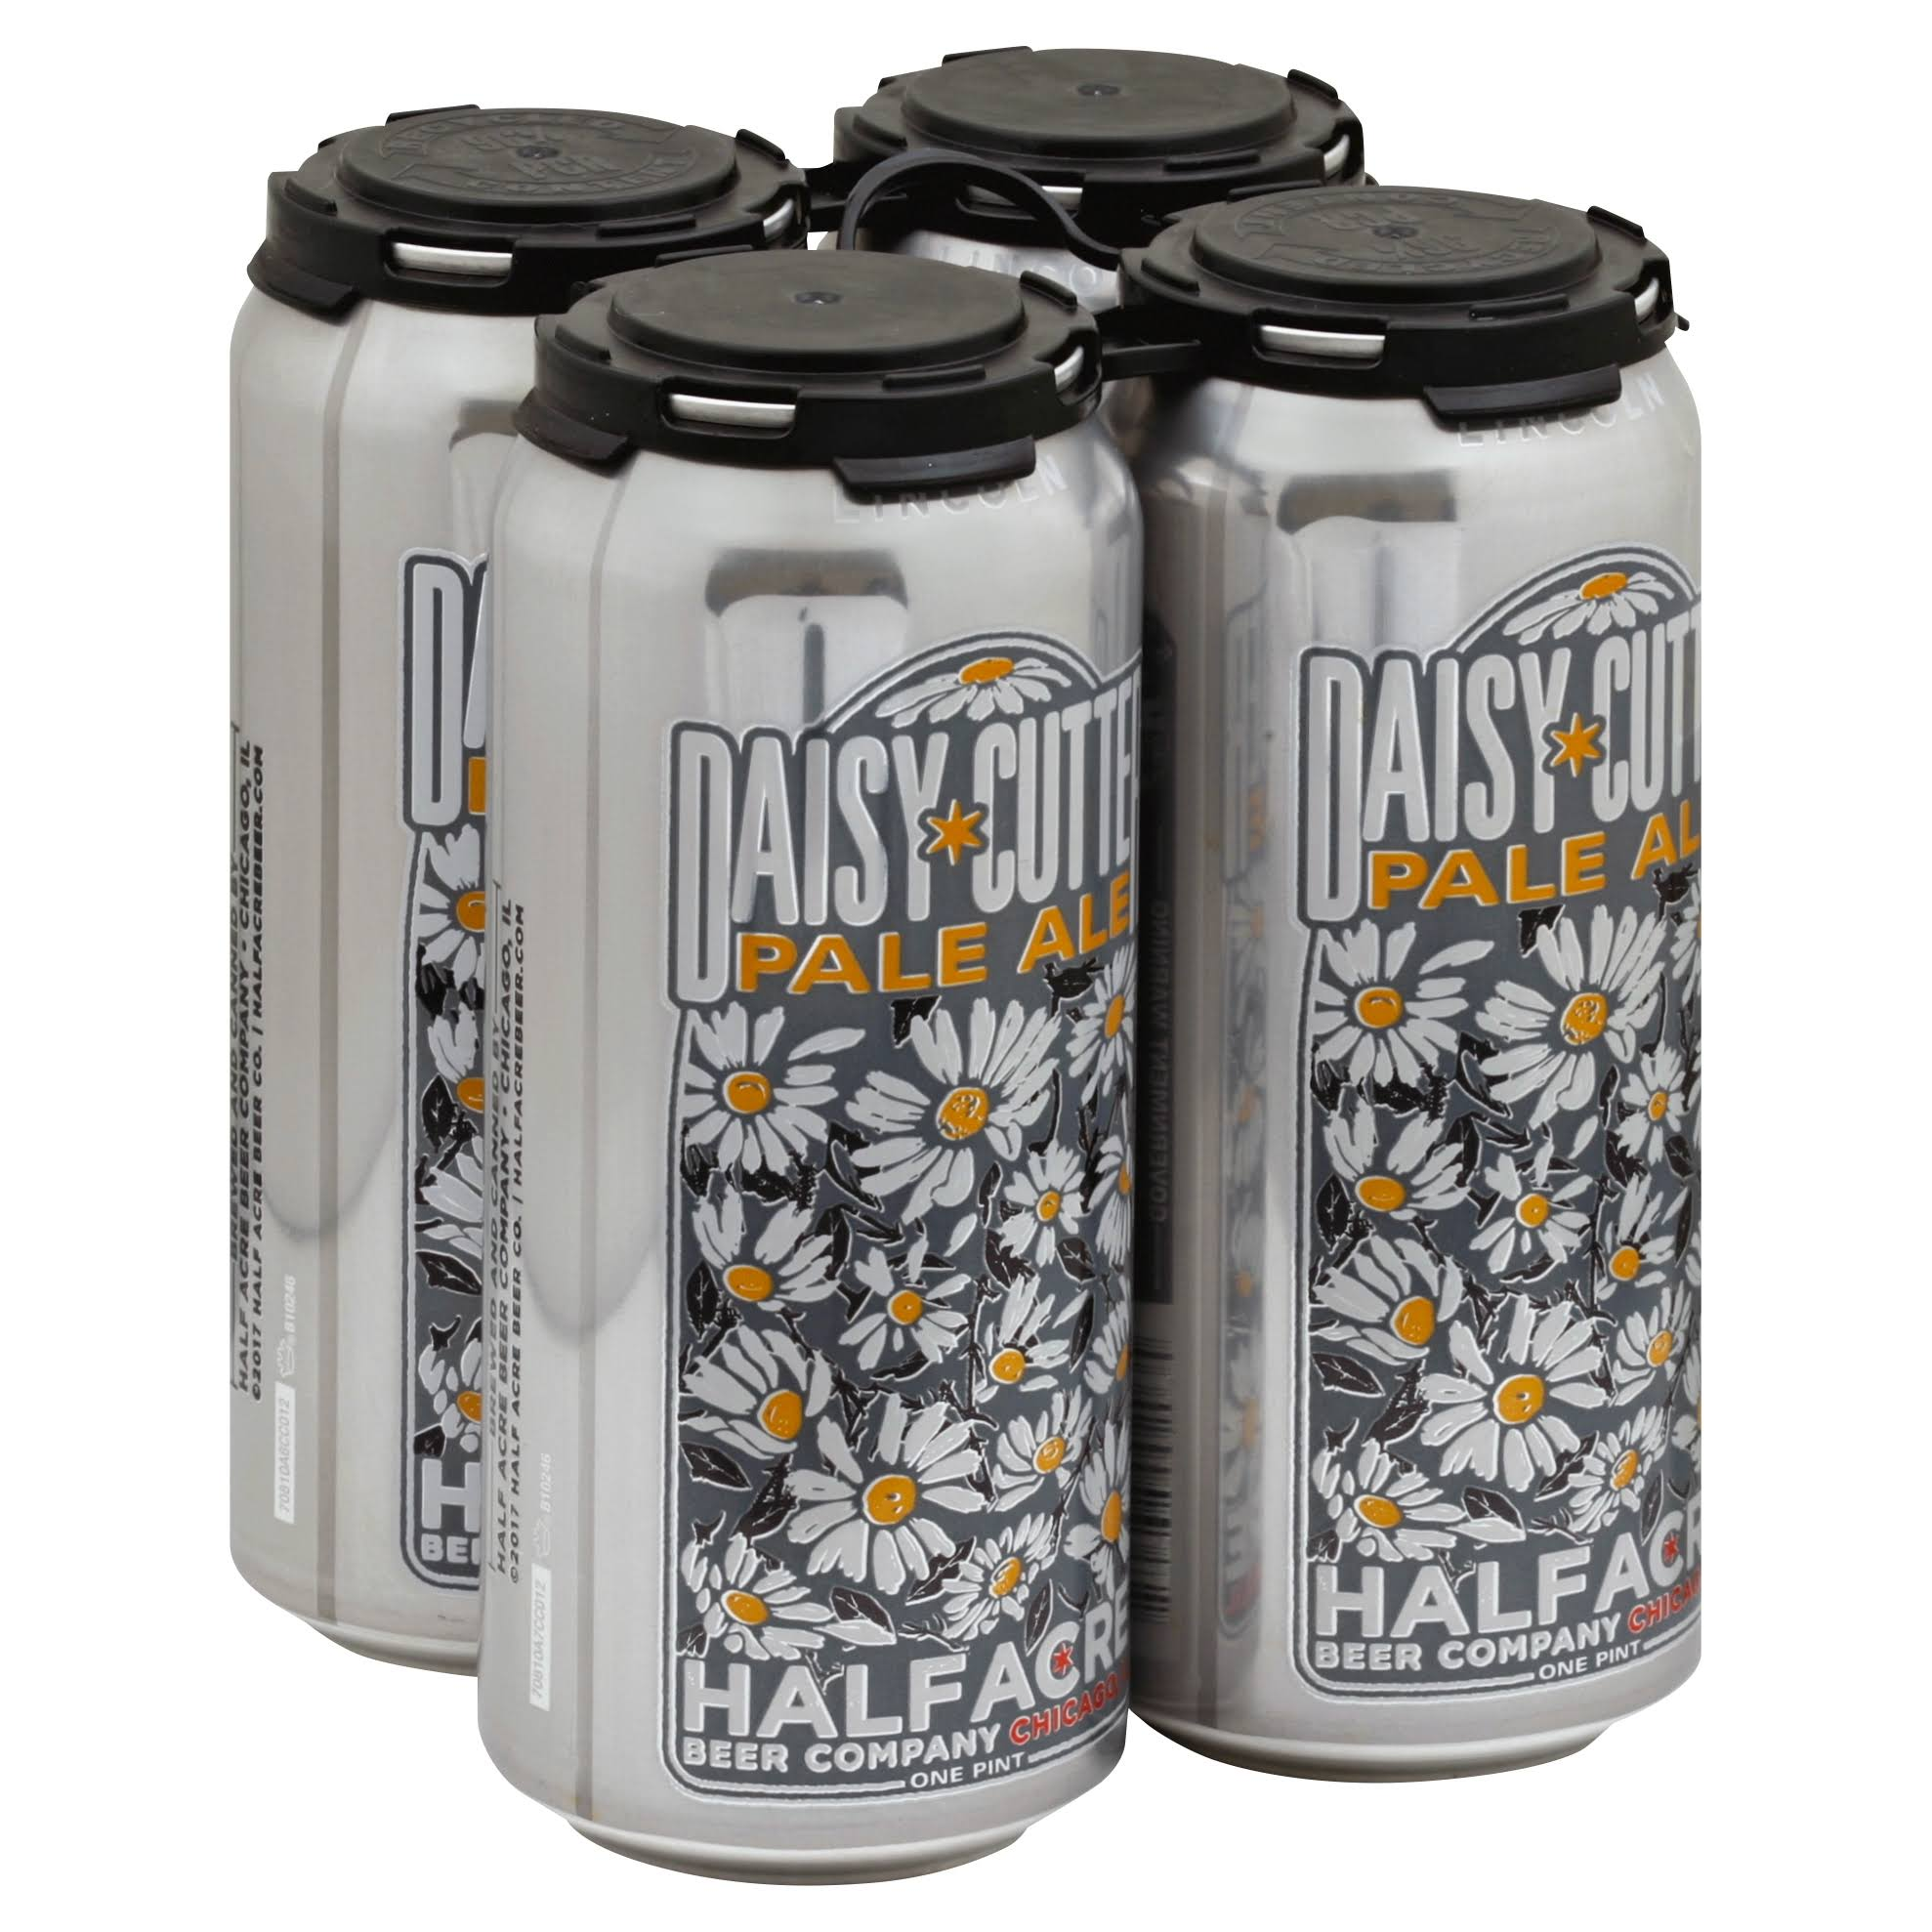 Half Acre Beer Company Beer, Pale Ale, Daisy Cutter - 4 - one pint cans